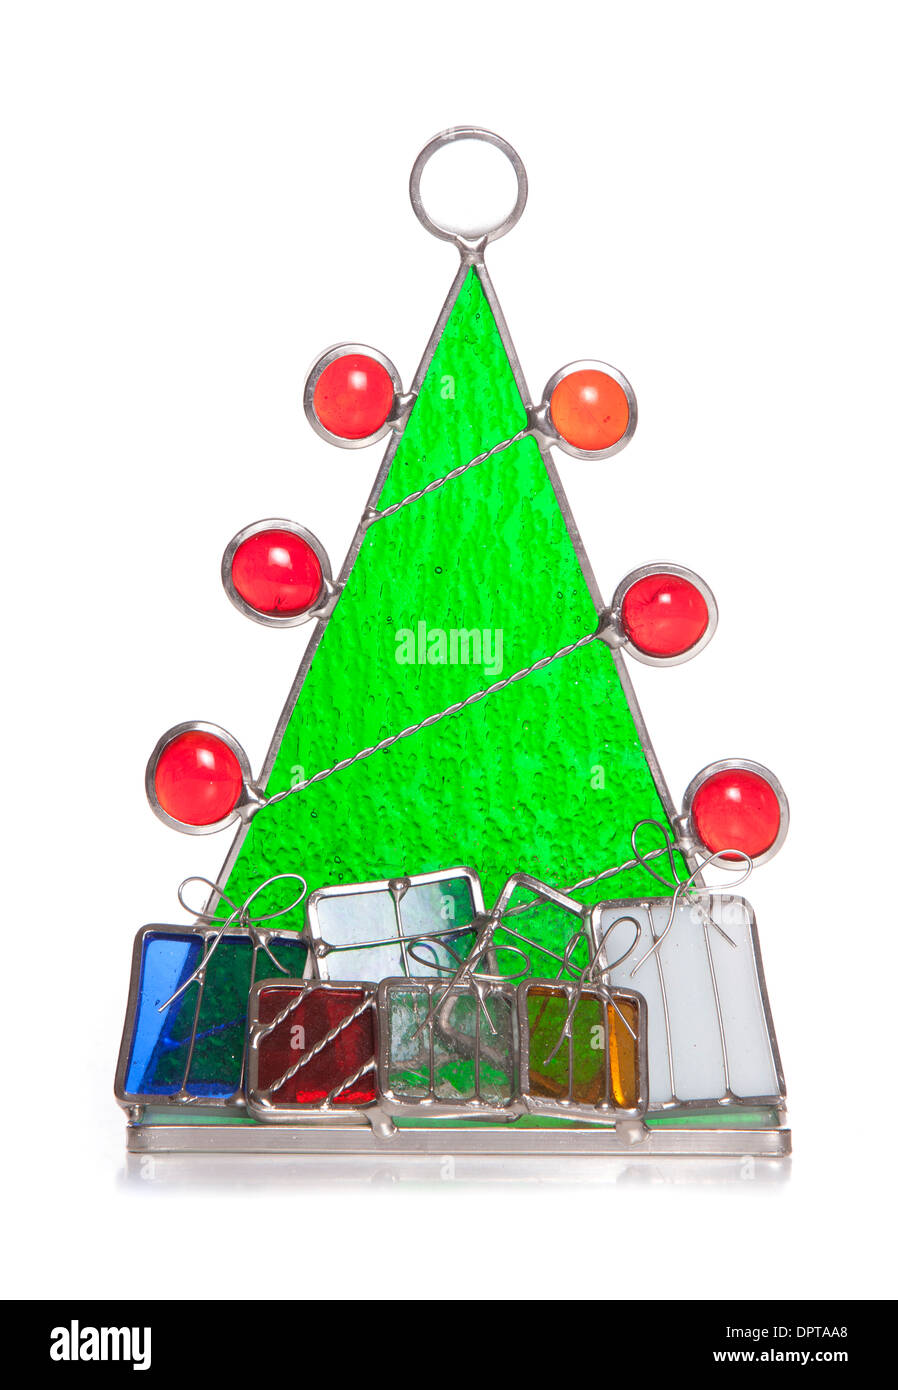 Christmas Tree Stained Glass Ornament Cutout Stock Photo 65688512